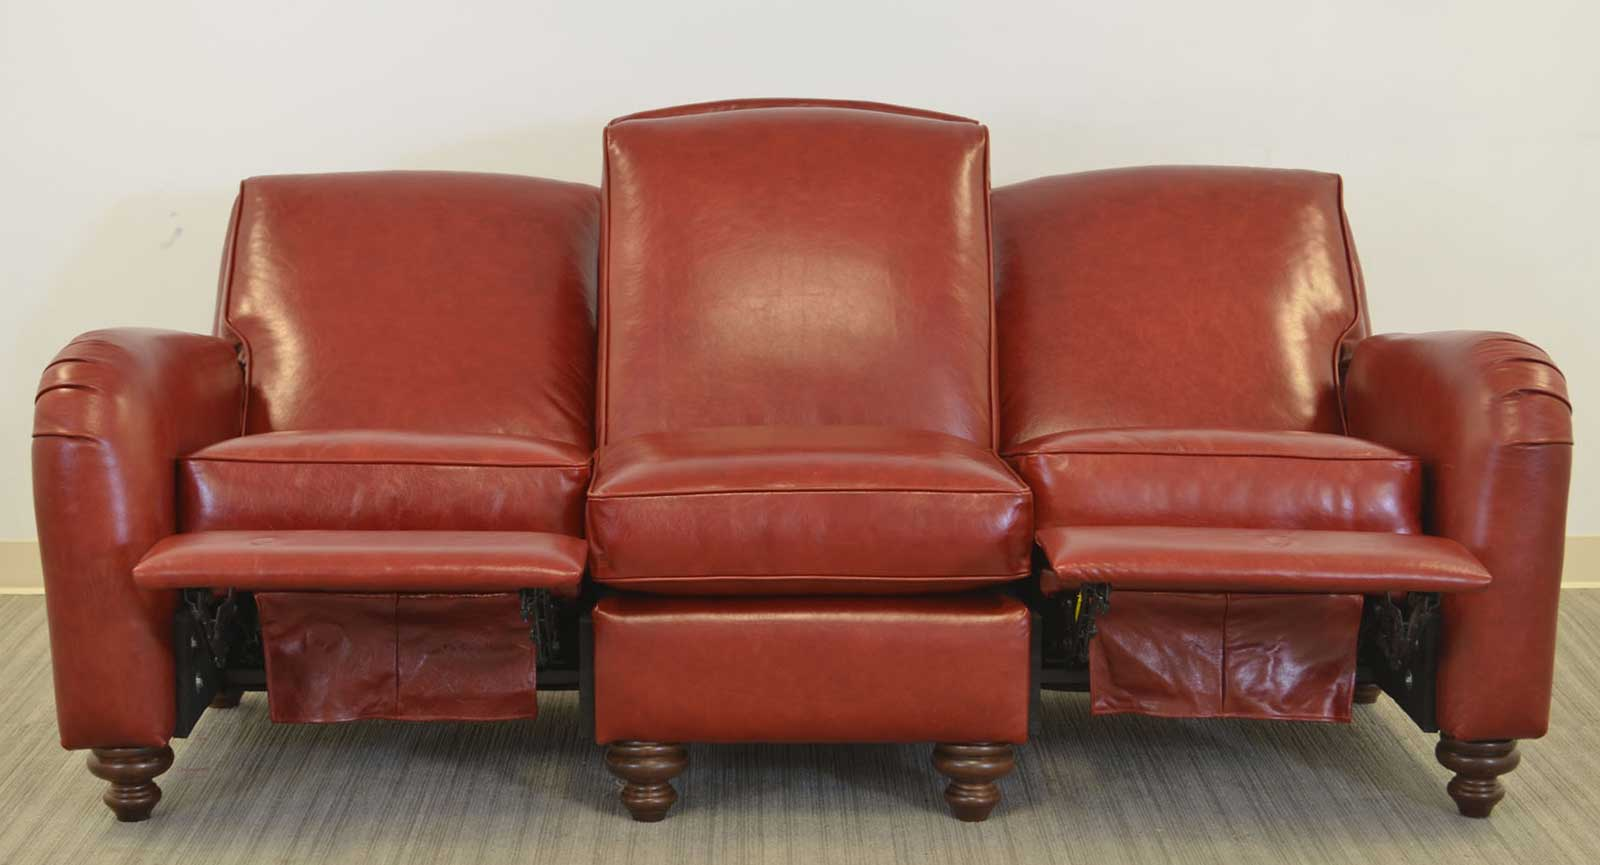 Sofa Two Incliners Open